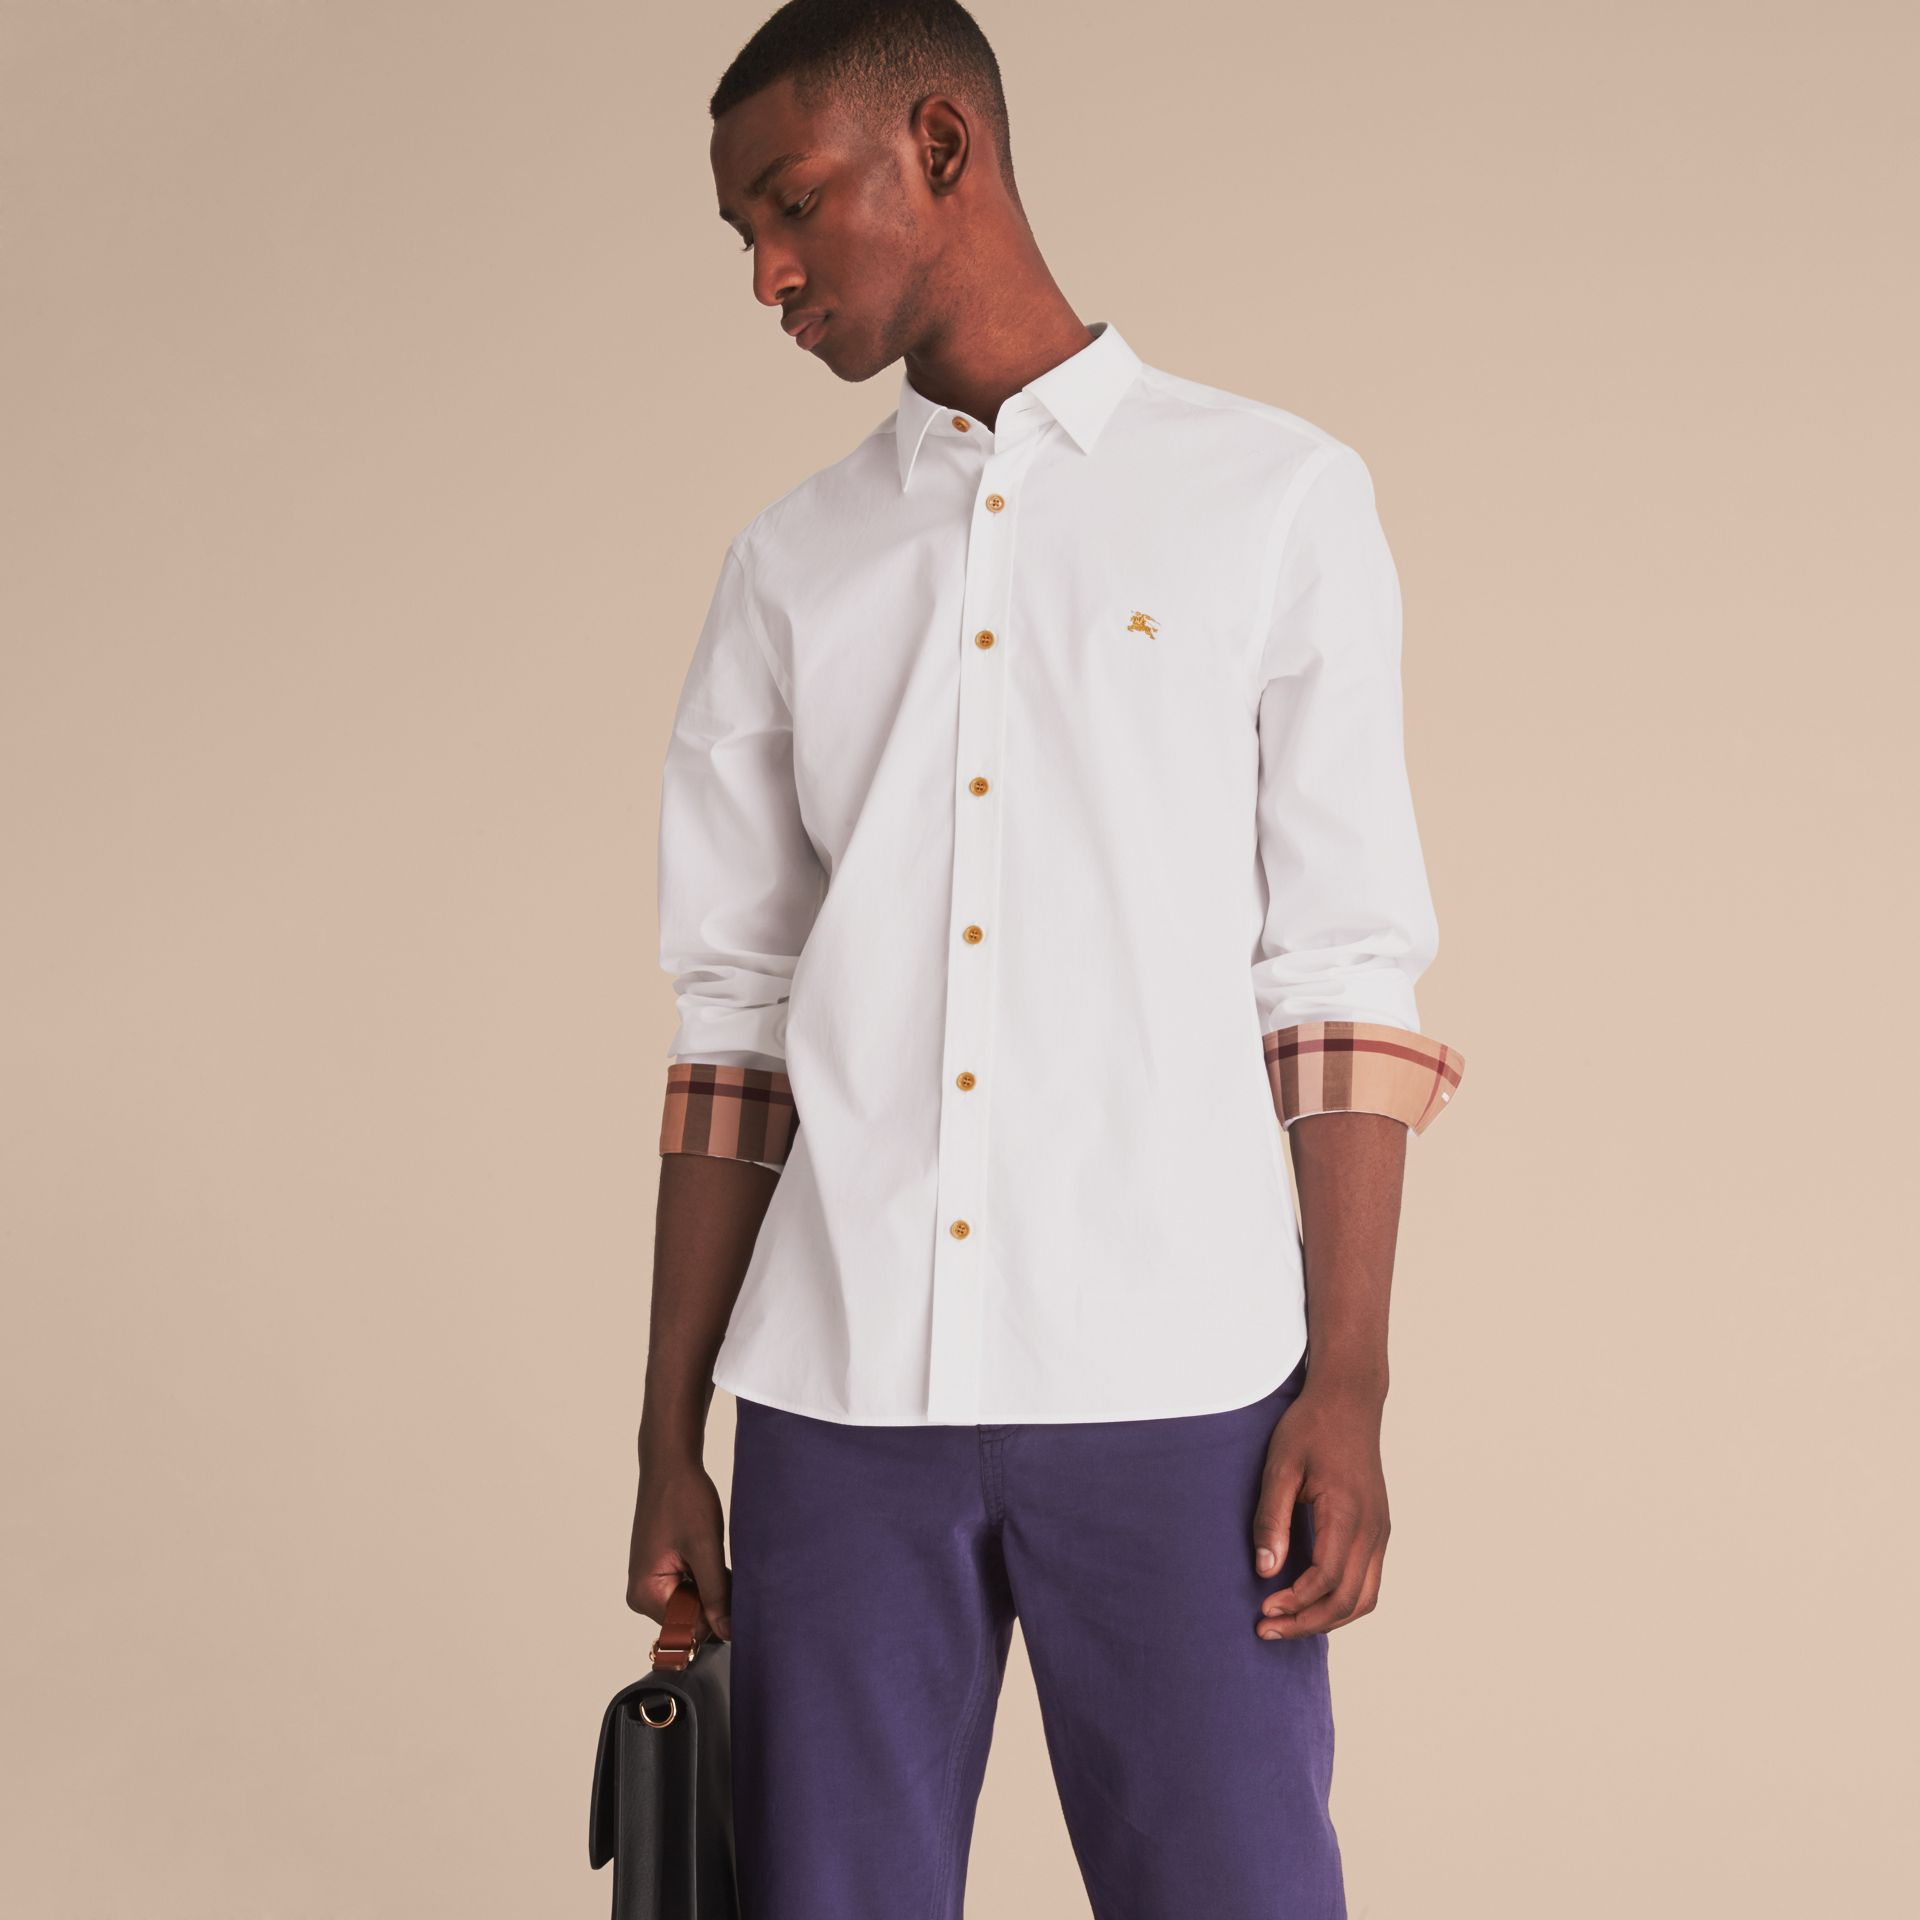 Resin Button Cotton Poplin Shirt in White - Men | Burberry - gallery image 7